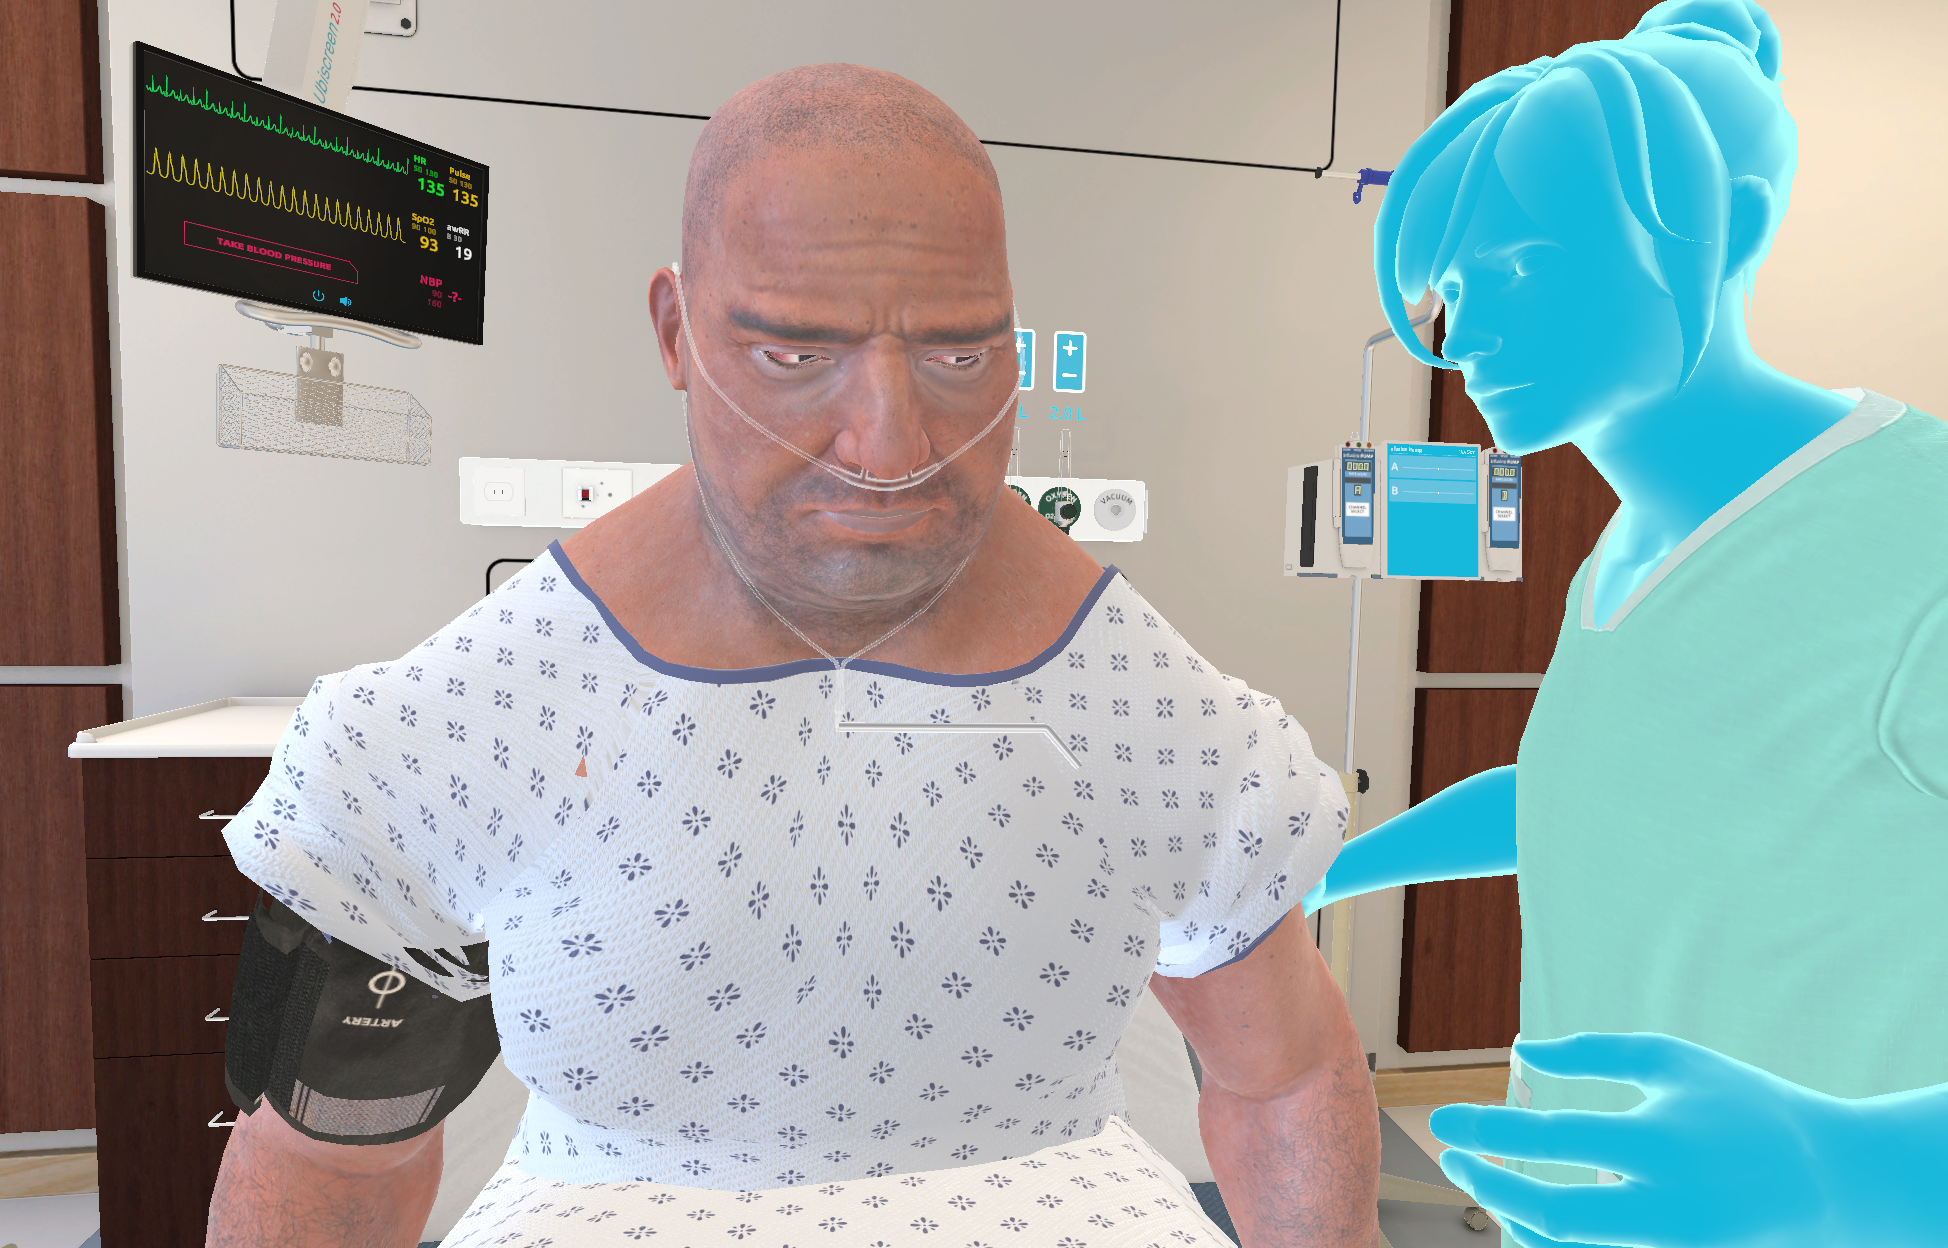 UbiSim Makes Virtual Reality Simulation Practical for Nursing